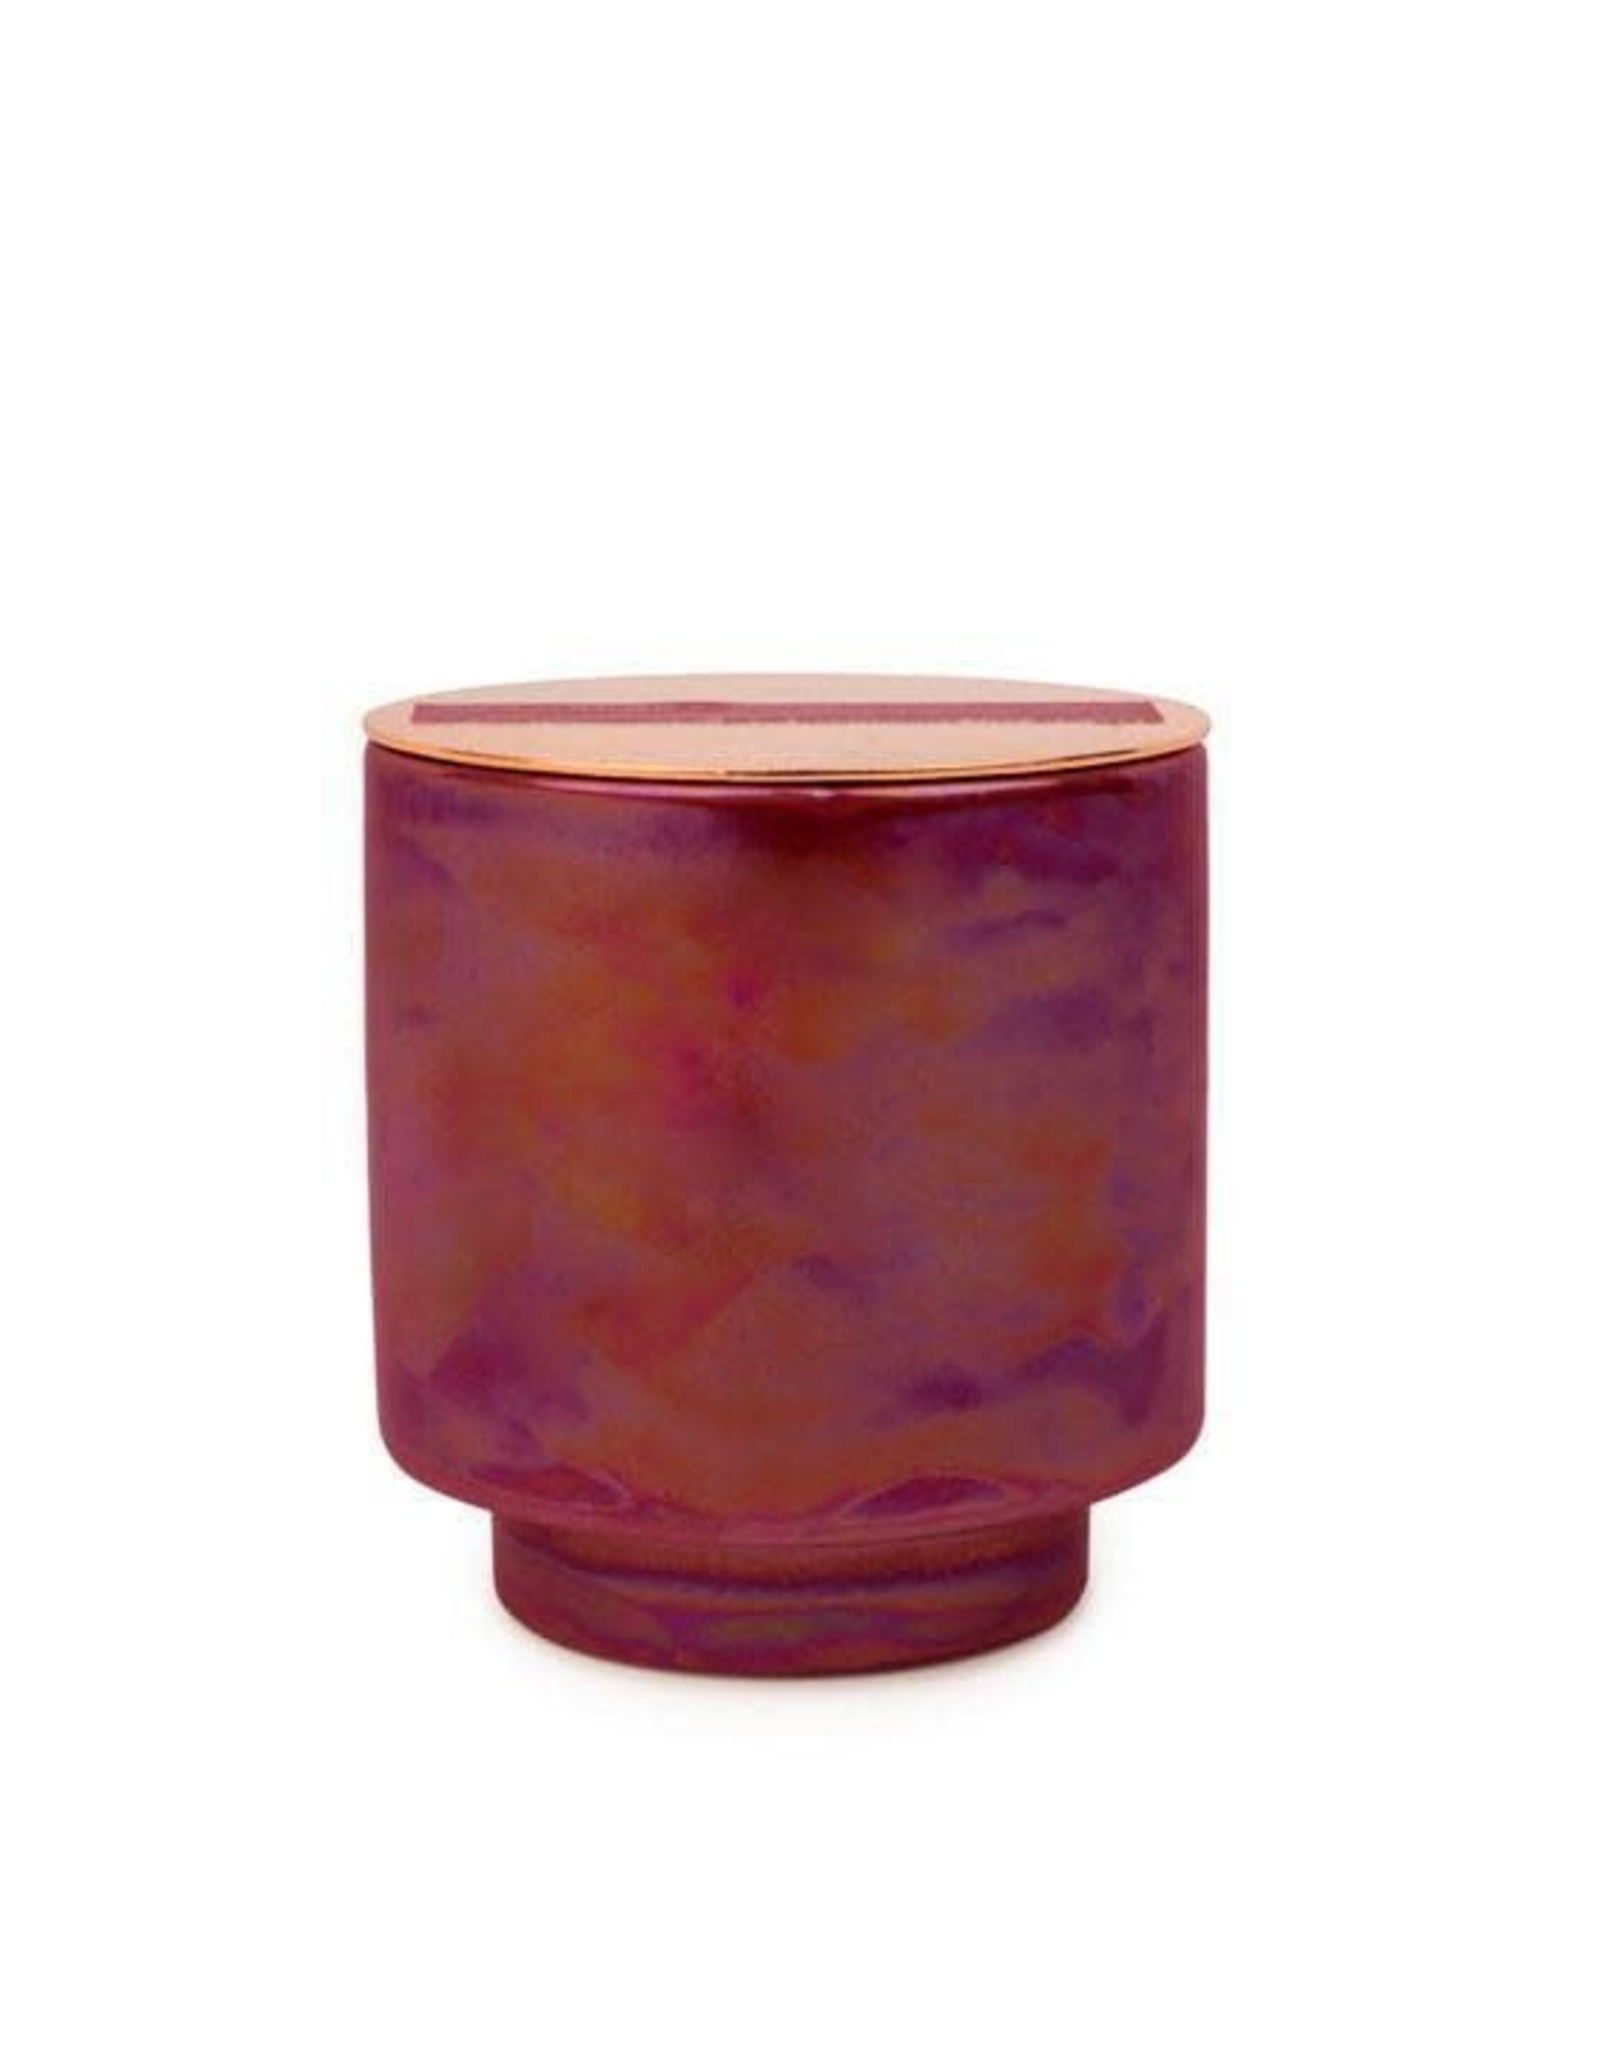 Cranberry Rose  Glow Candle - 17 oz.